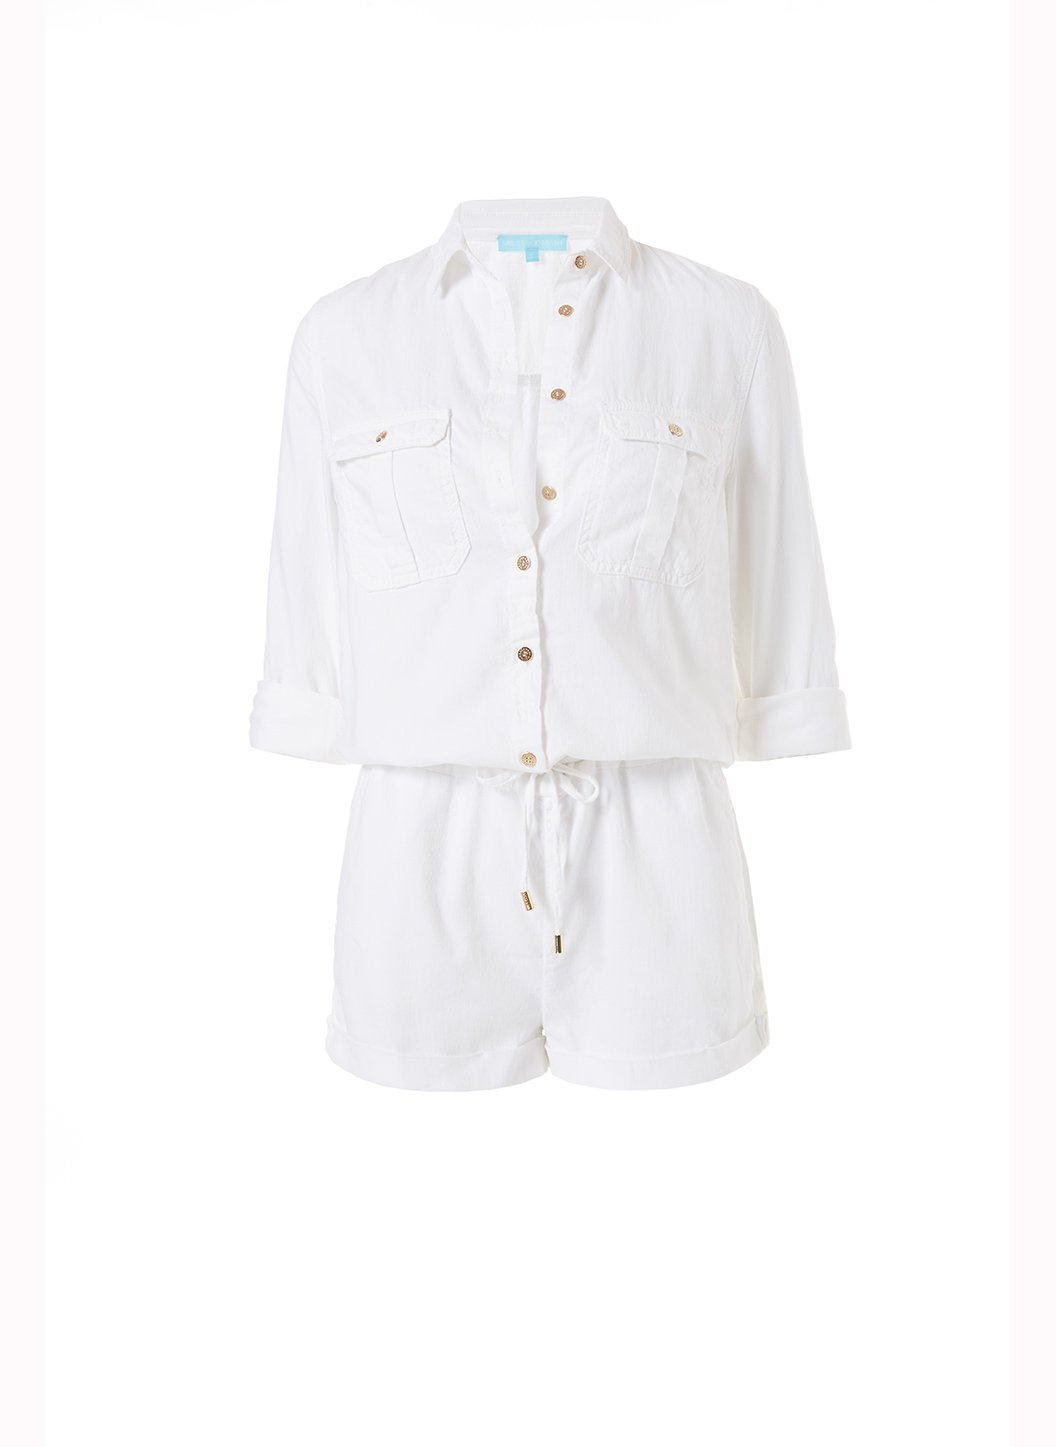 honour white denim utility playsuit 2019